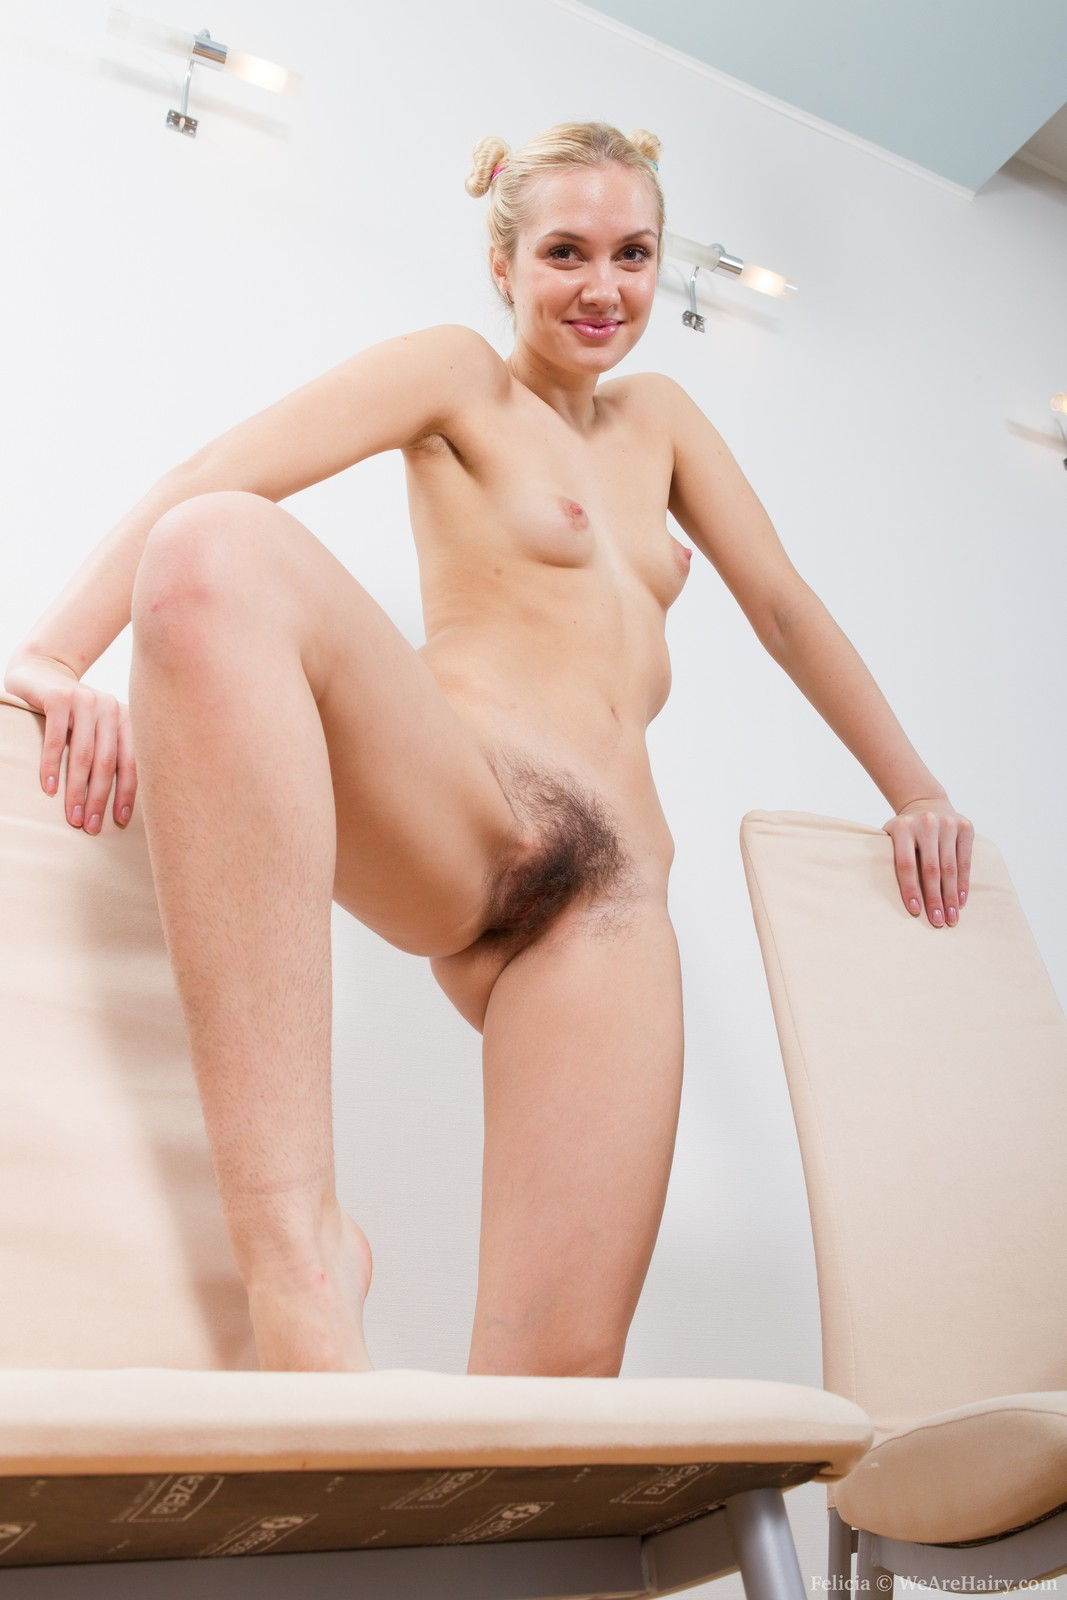 18 virgin sex sensual and romantic sex is what 18 year old polina 10